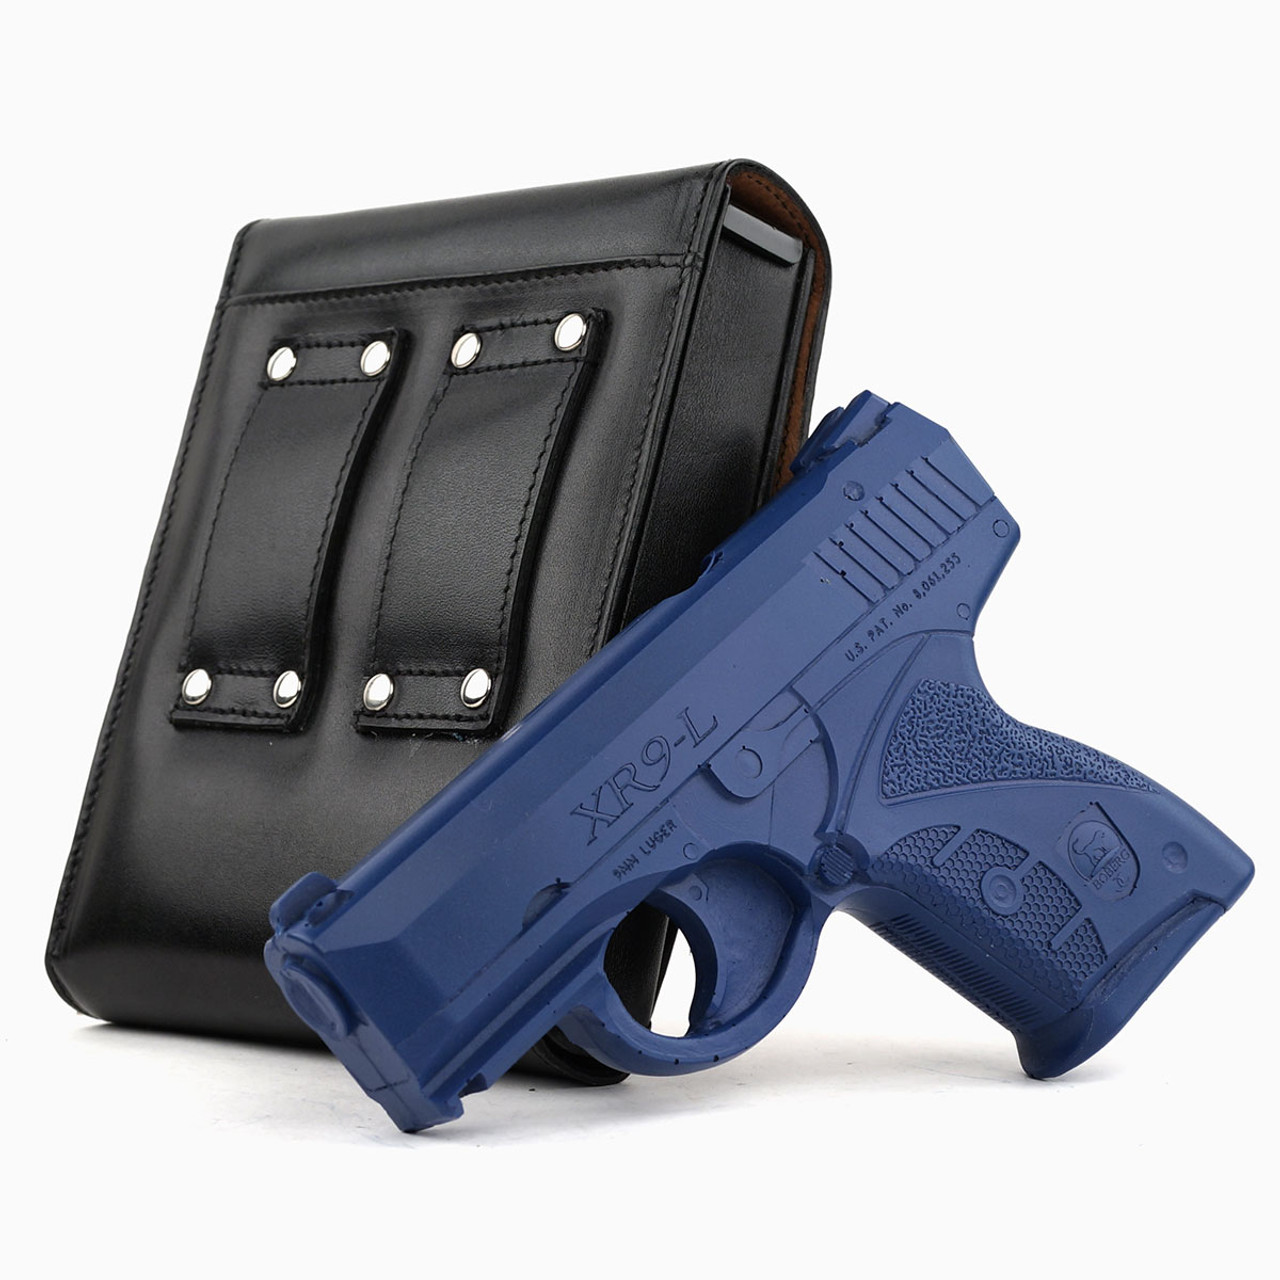 Boberg XR9-L Concealed Carry Holster (Belt Loop)